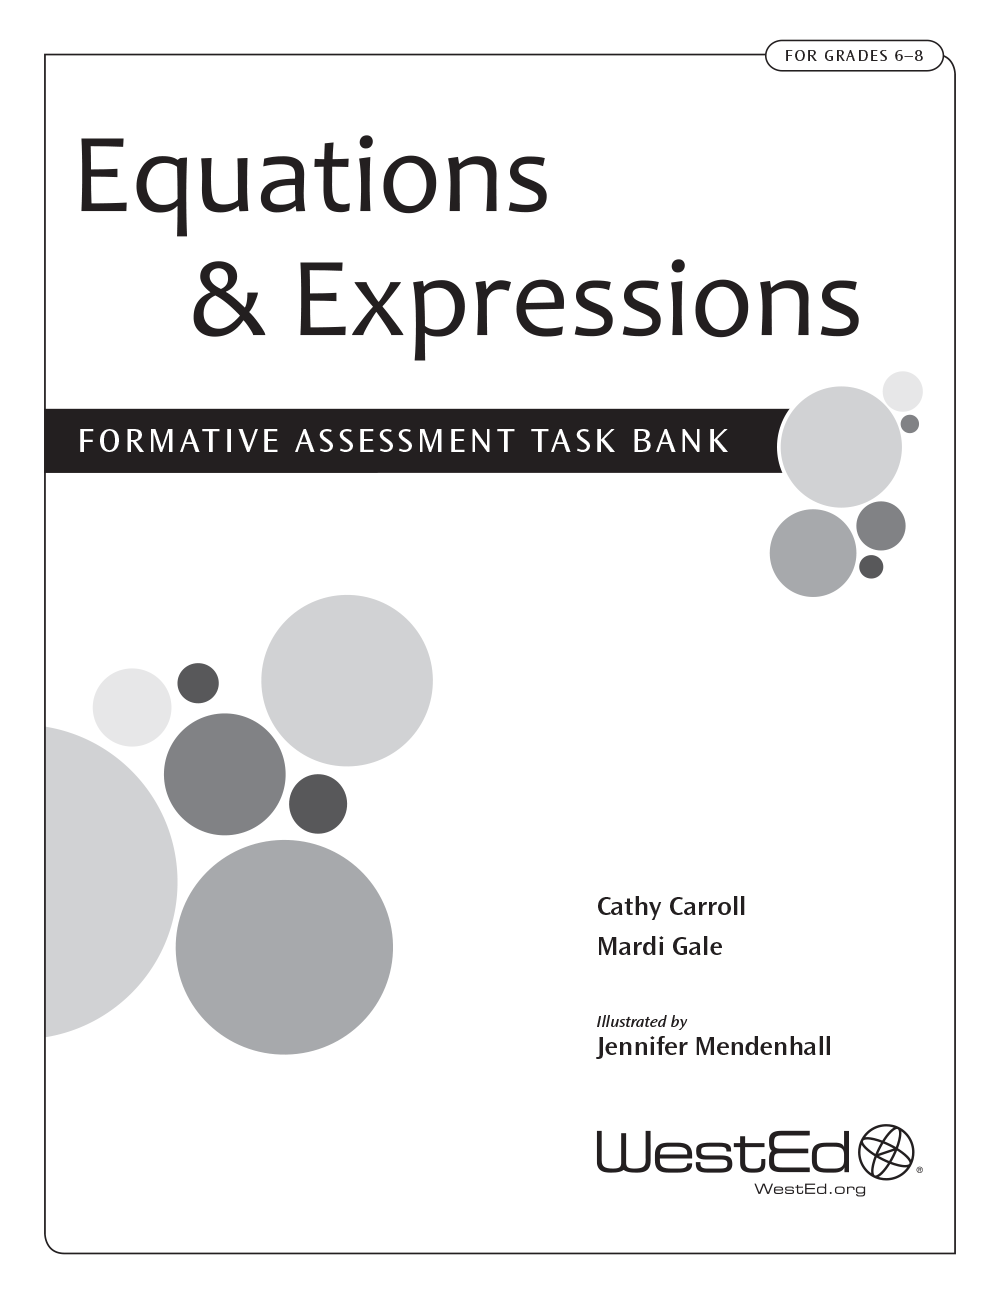 Cover Image For Equations & Expressions: Formative Assessment Task Bank For  Grades